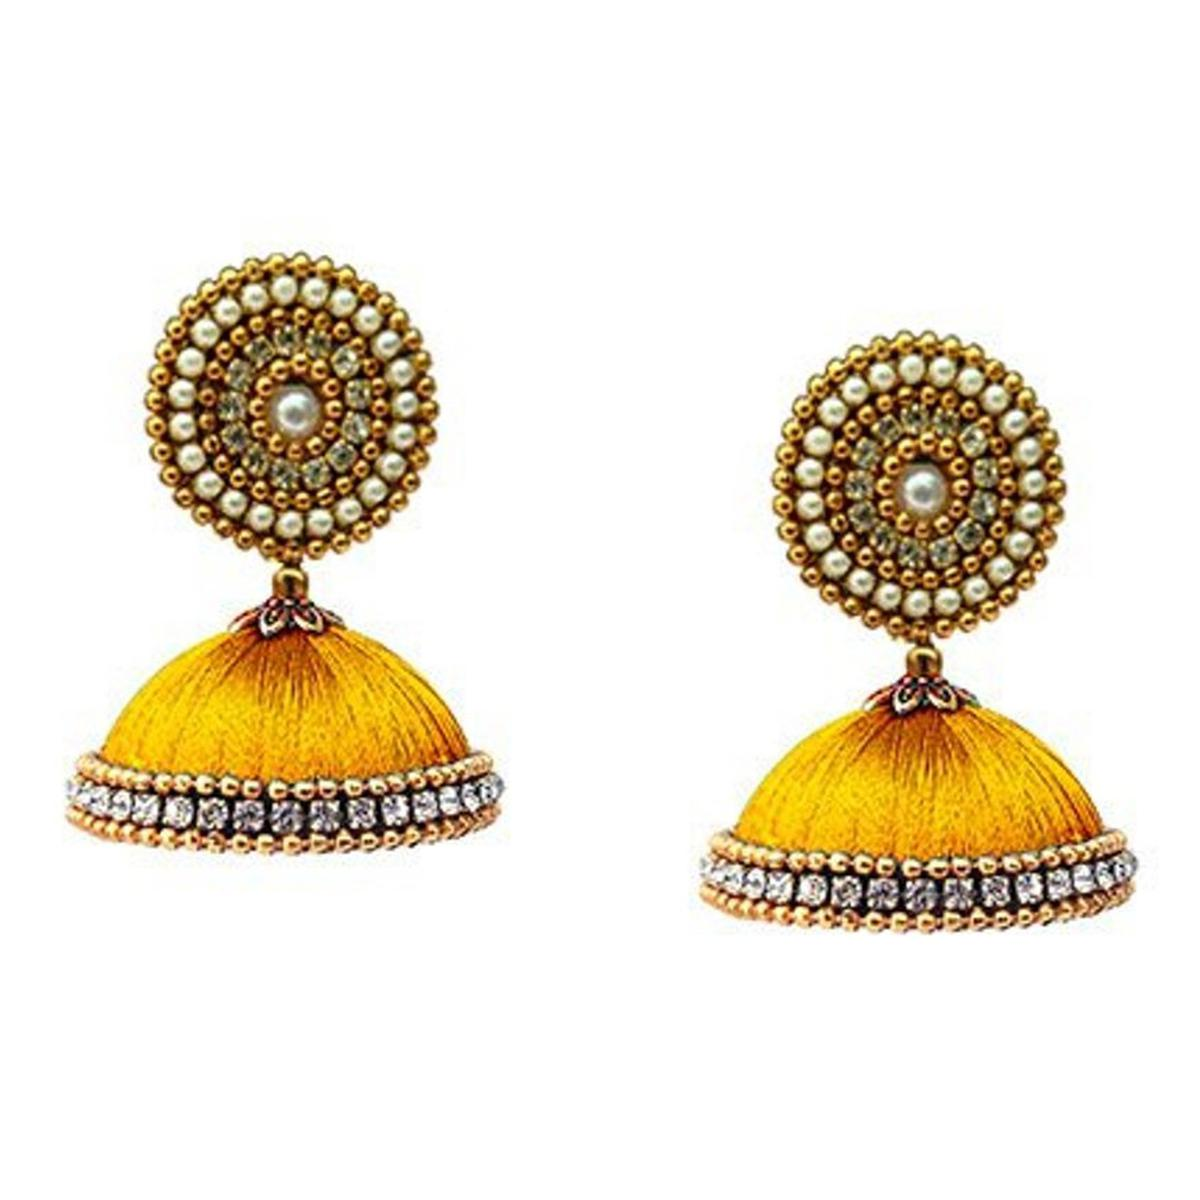 Blooming Mustard Yellow Colored Stone Work Resham Thread Earrings